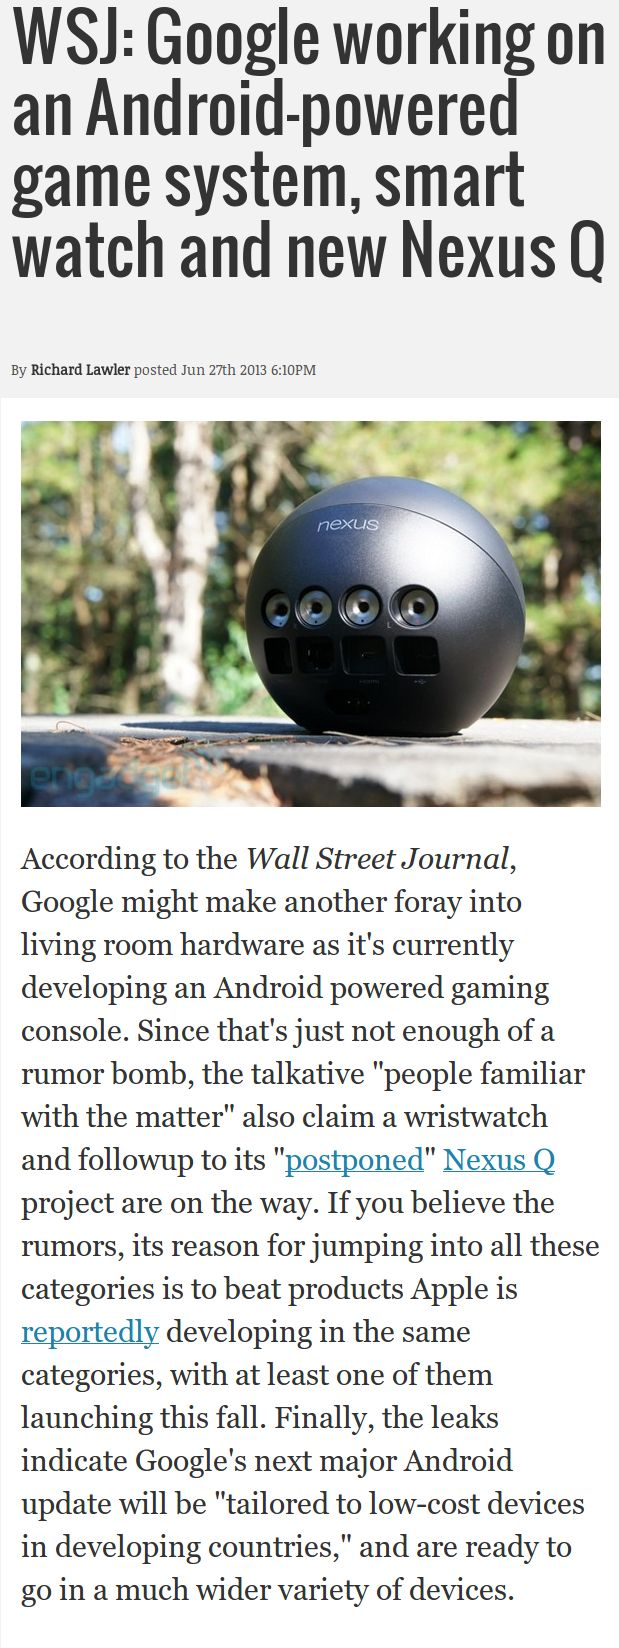 Google working on an Android-powered game system, smart watch and new Nexus Q http://www.engadget.com/2013/06/27/wsj-google-android-game-console/